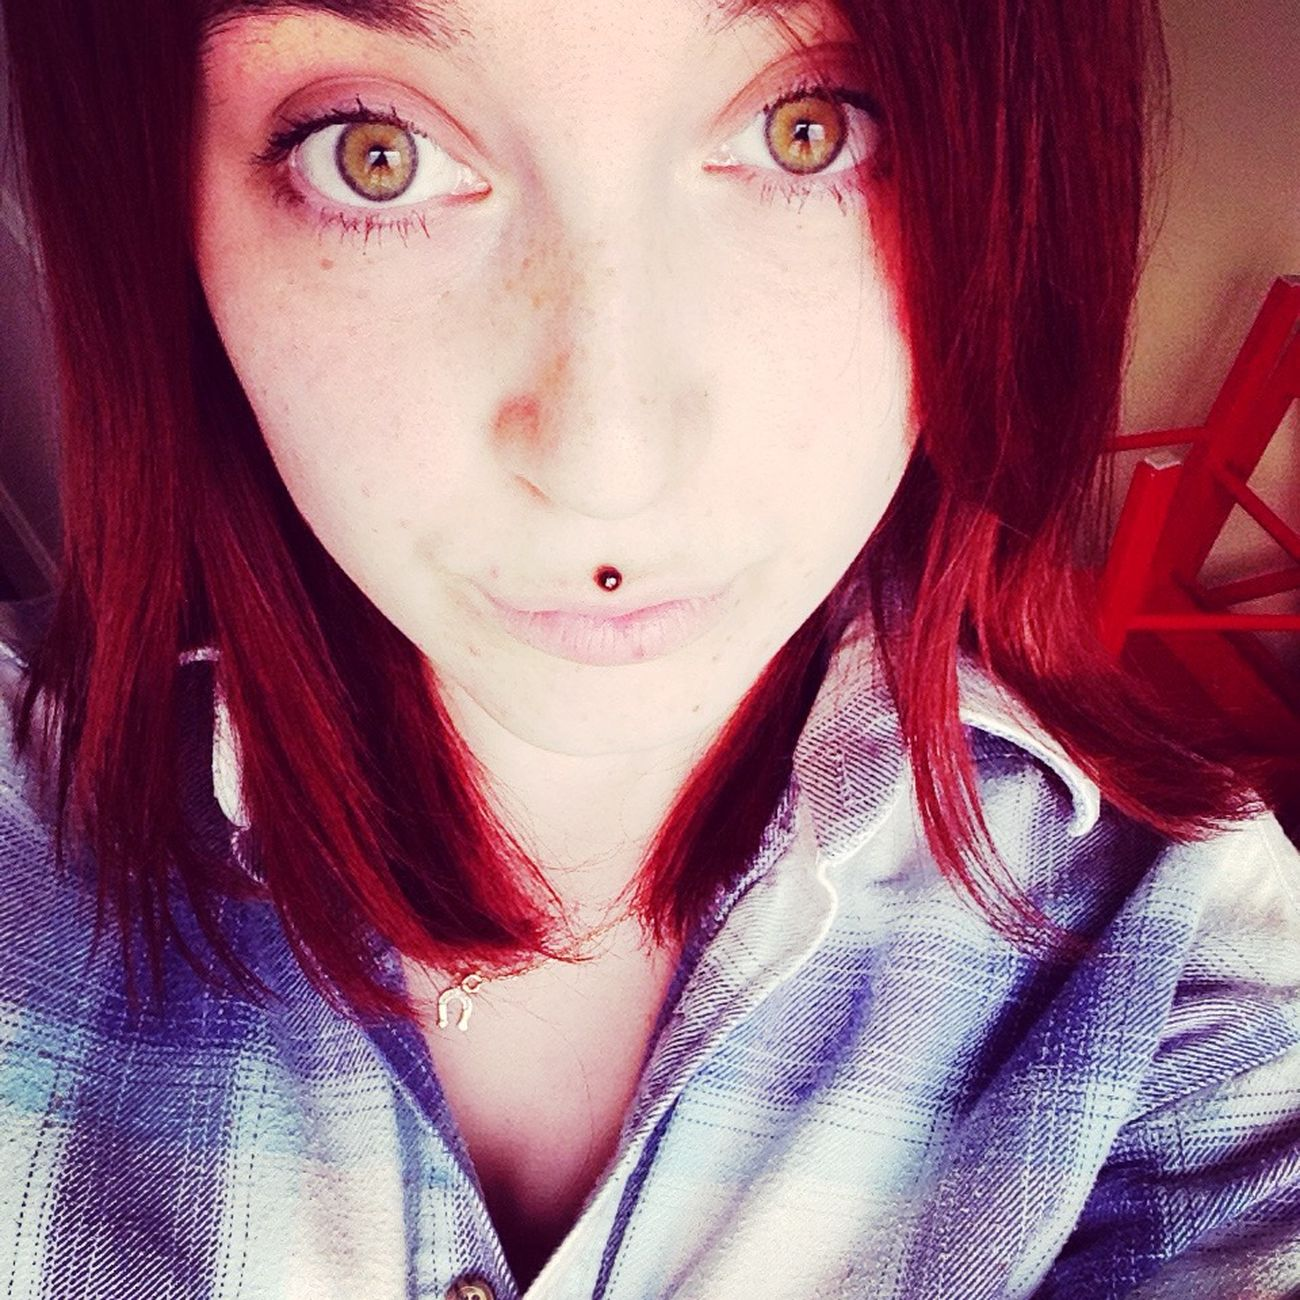 Lazy day, rainy day 👌🙈 Self Portrait Selfie Cool Taking Photos Relax Jacket Greeneyes Redhair Redhead Medusapiercing